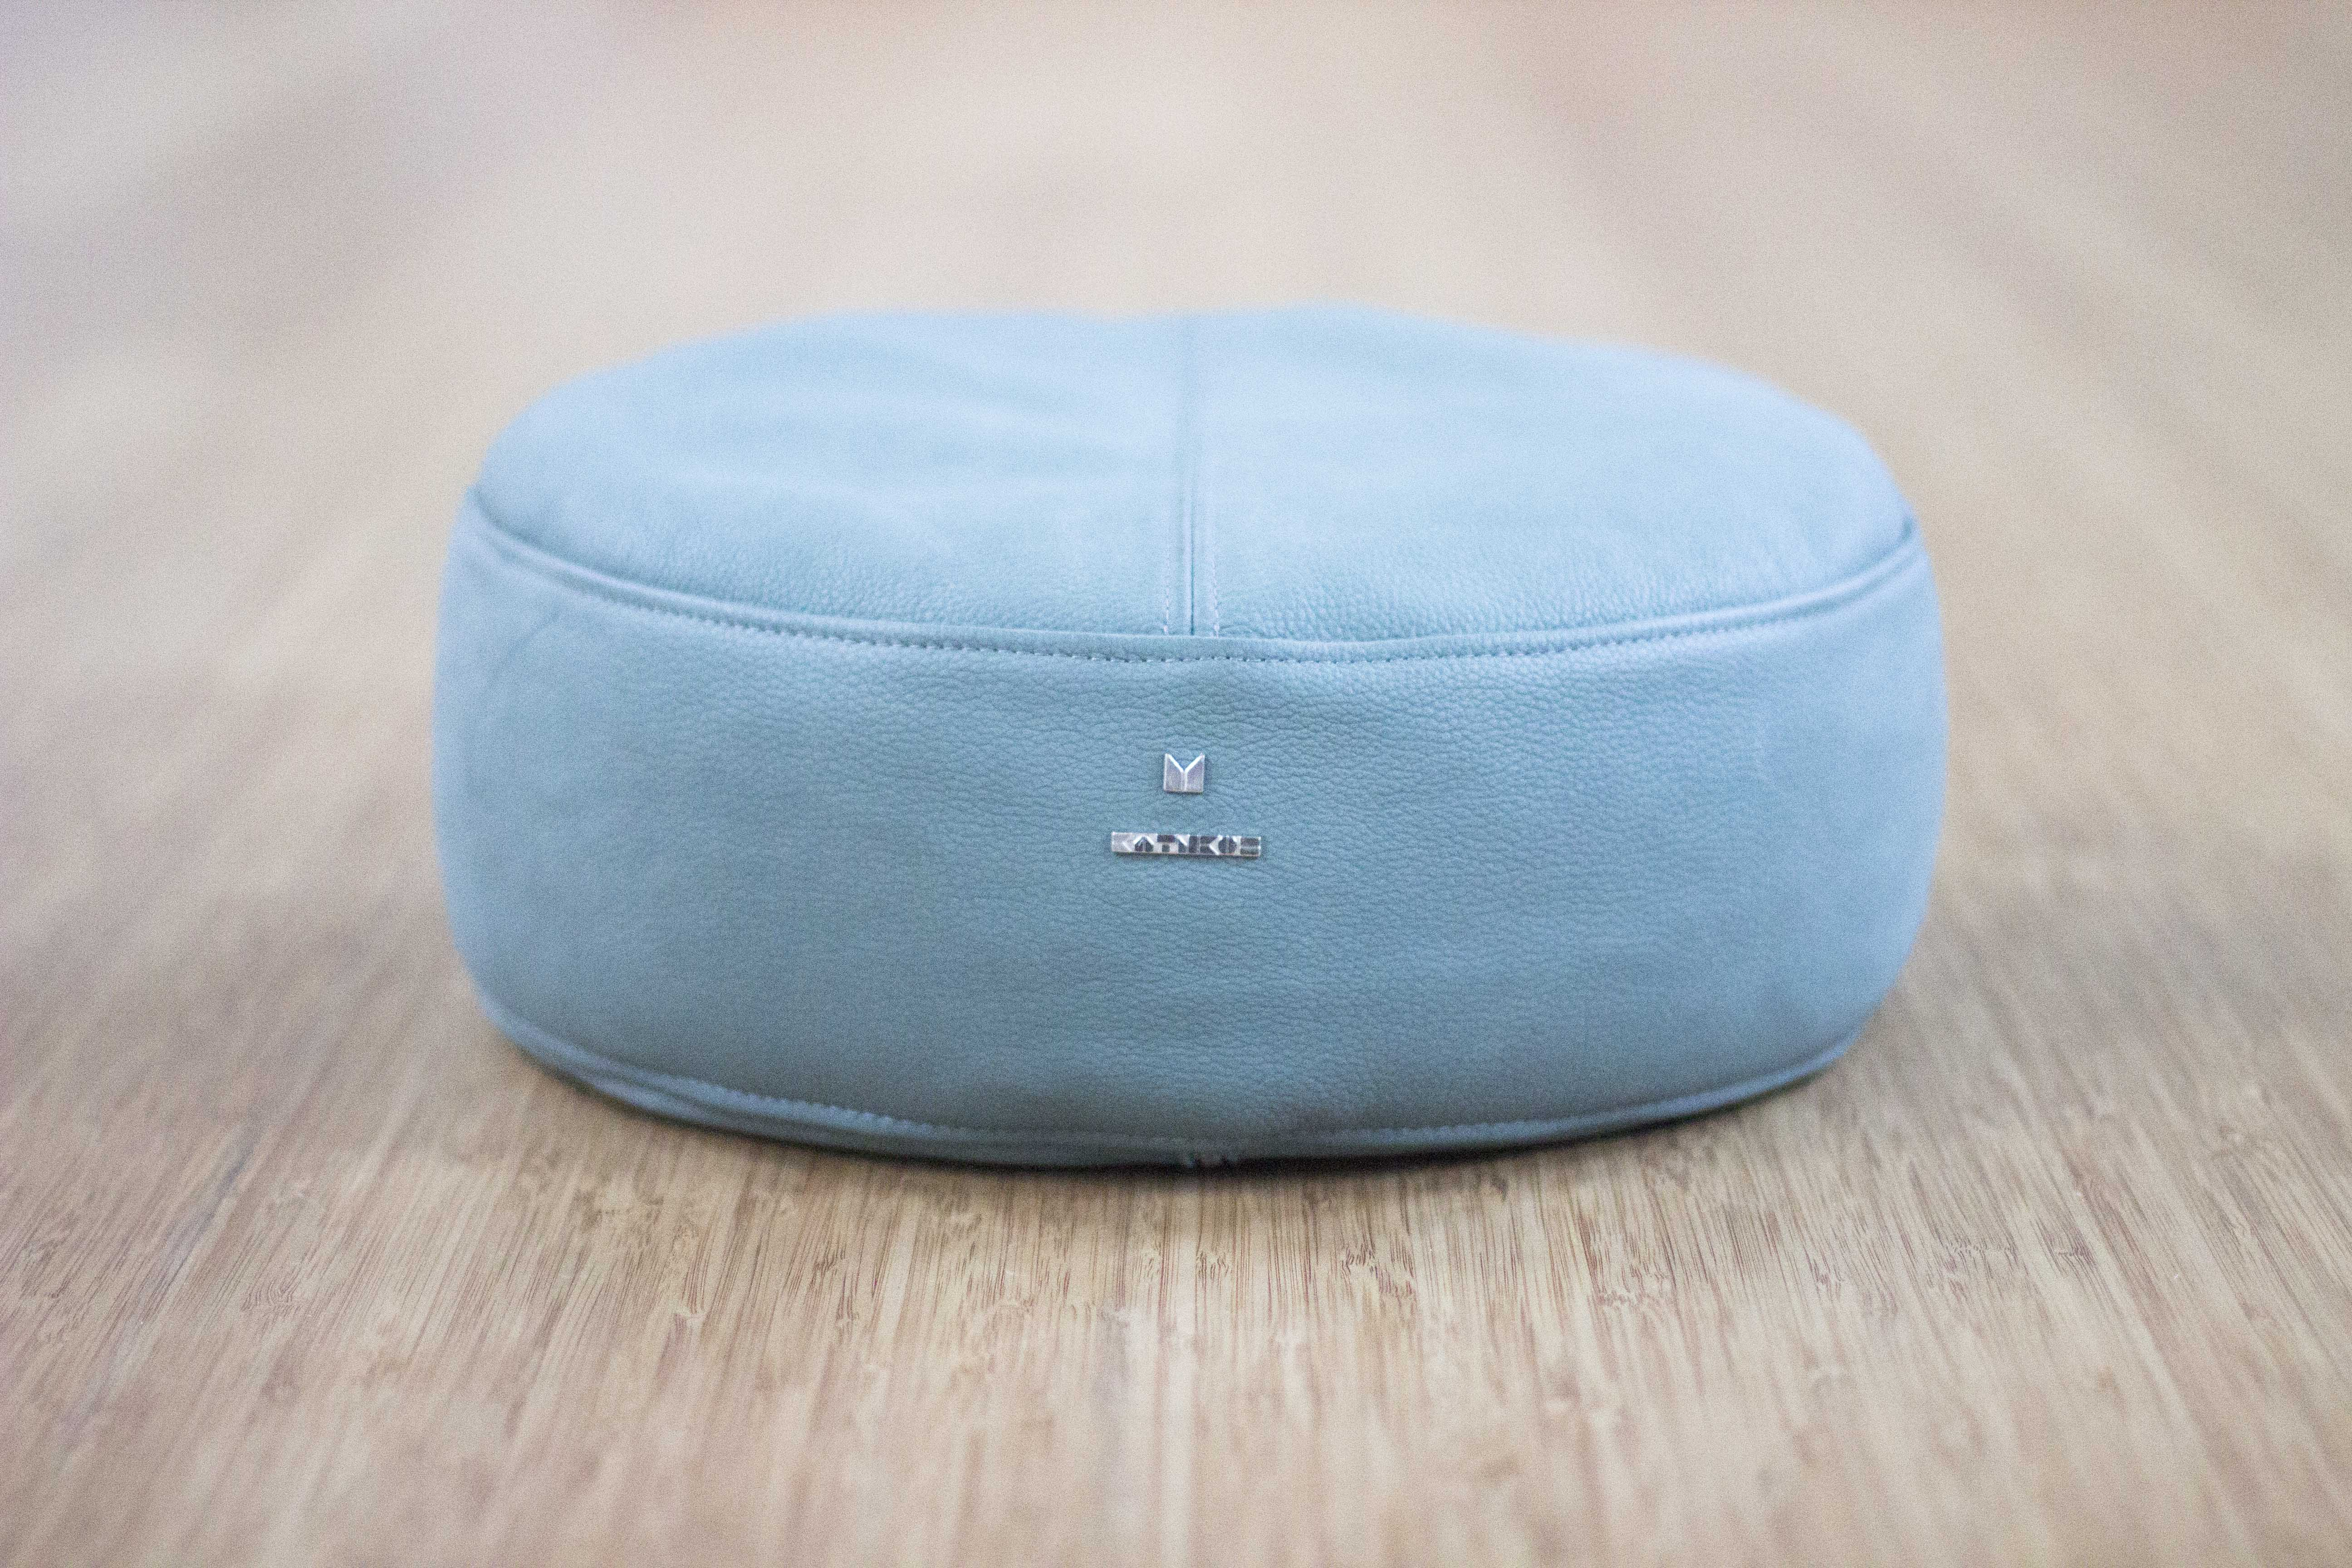 Bag at You - KatnKoe meditation pillow